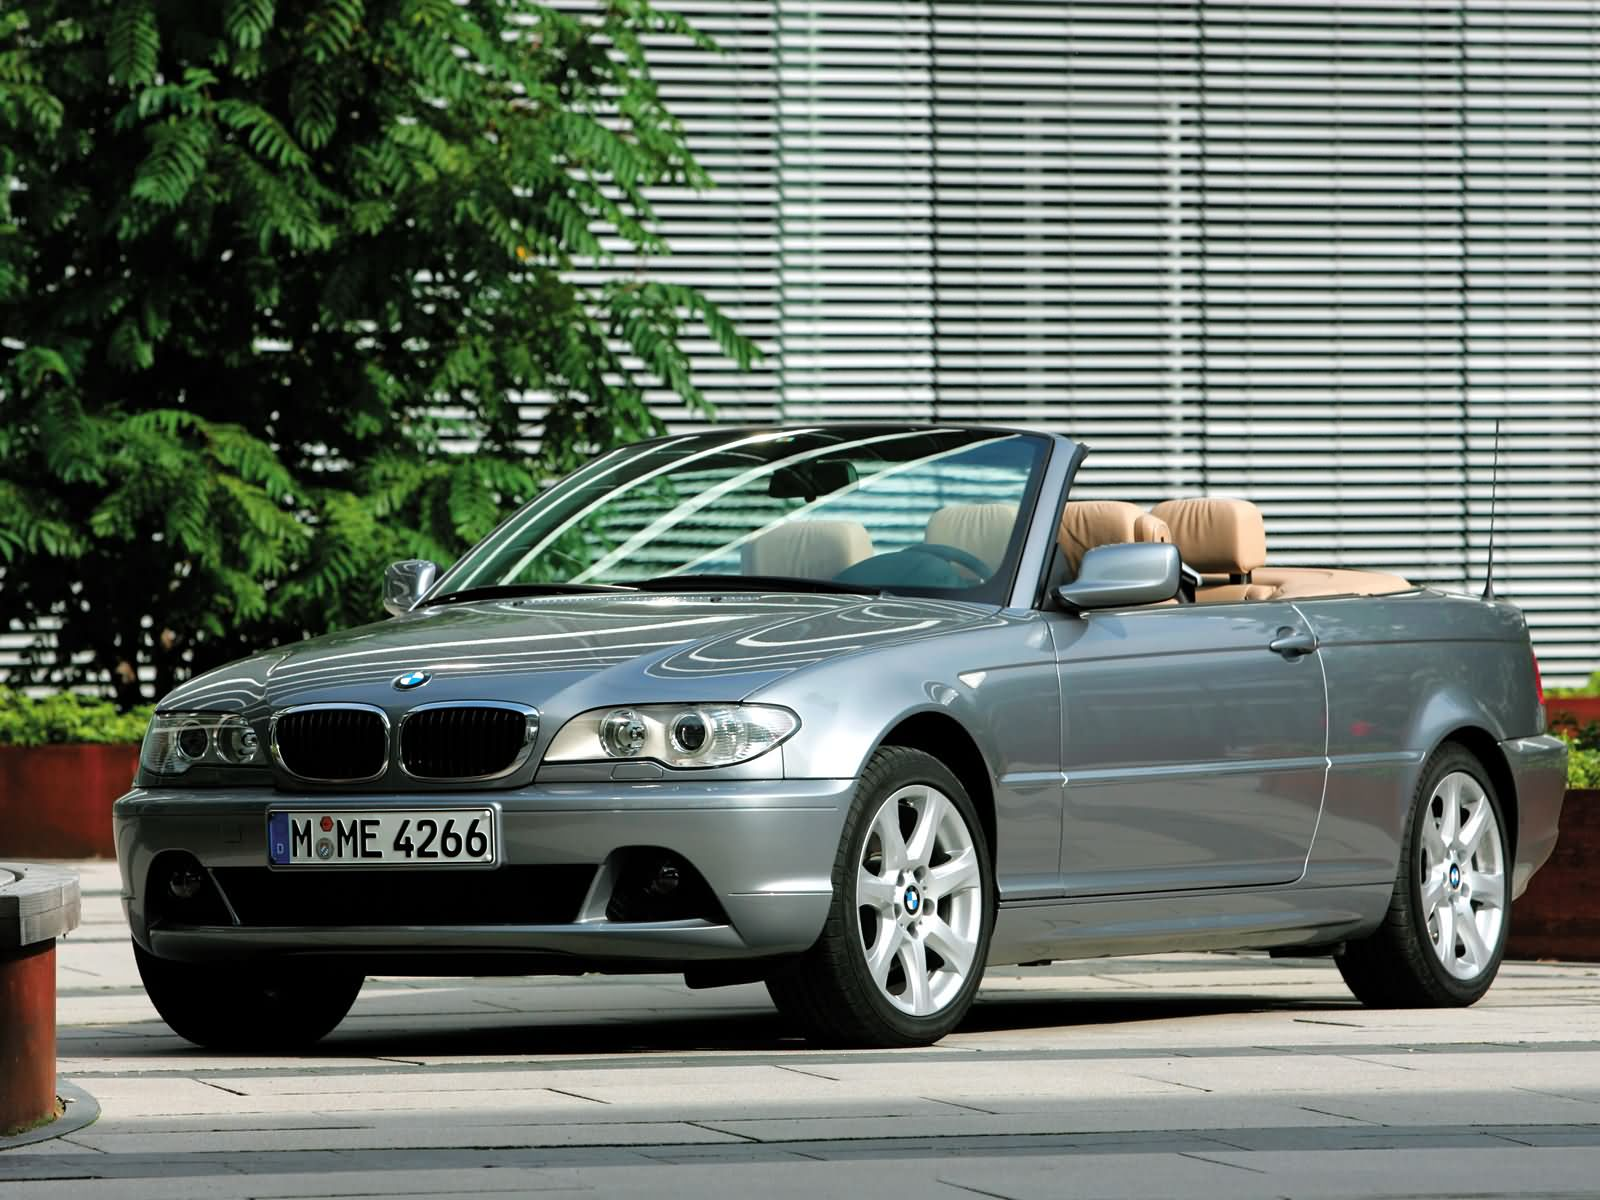 bmw 3 series e46 convertible picture 15822 bmw photo gallery. Black Bedroom Furniture Sets. Home Design Ideas